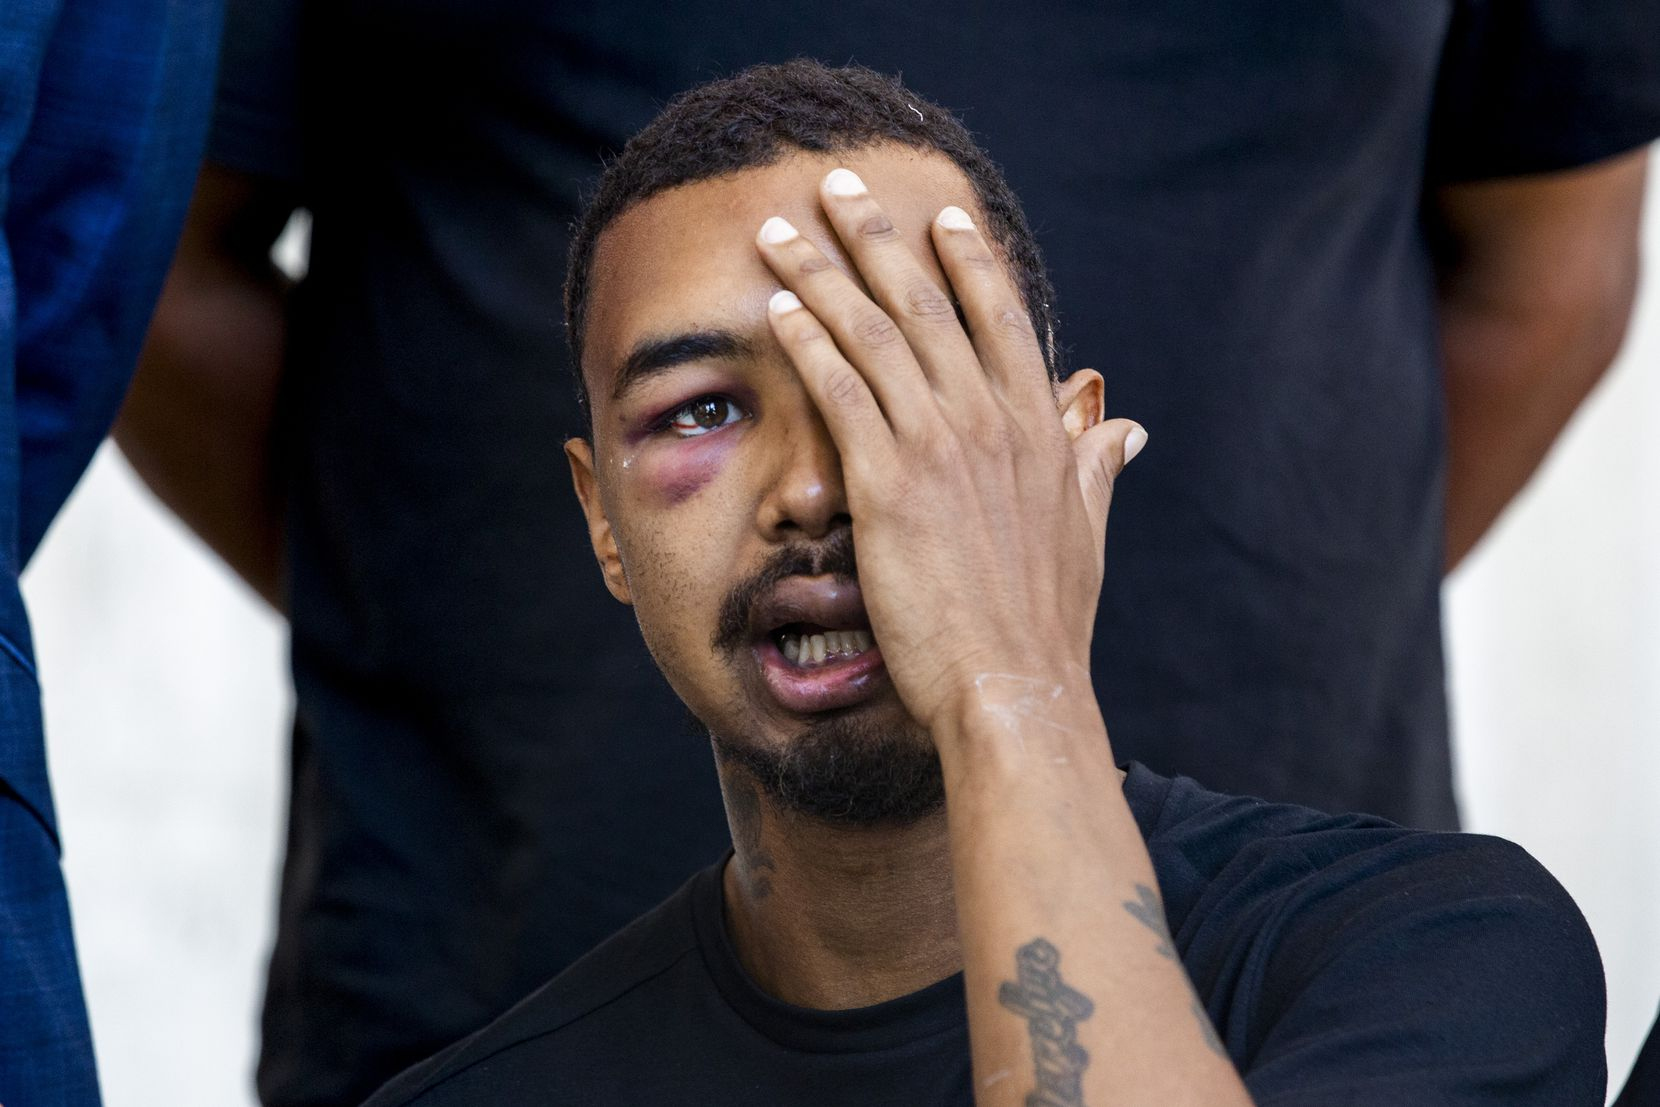 Surrounded by his legal representation and his father, Brandon Saenz, 26, explains how he was hit in the left eye by a rubber bullet fired by Dallas Police at this past weekendÕs protests during a press conference in downtown Dallas on Wednesday, June 3, 2020. Saenz lost his left eye and has had to have metal plates put in his head. Law enforcement used various crowd control weapons throughout last weekend as hundreds of demonstrators took to the streets to denounce police brutality in response to the recent deaths of George Floyd in Minneapolis and Breonna Taylor in Louisville. (Lynda M. Gonzalez/The Dallas Morning News)